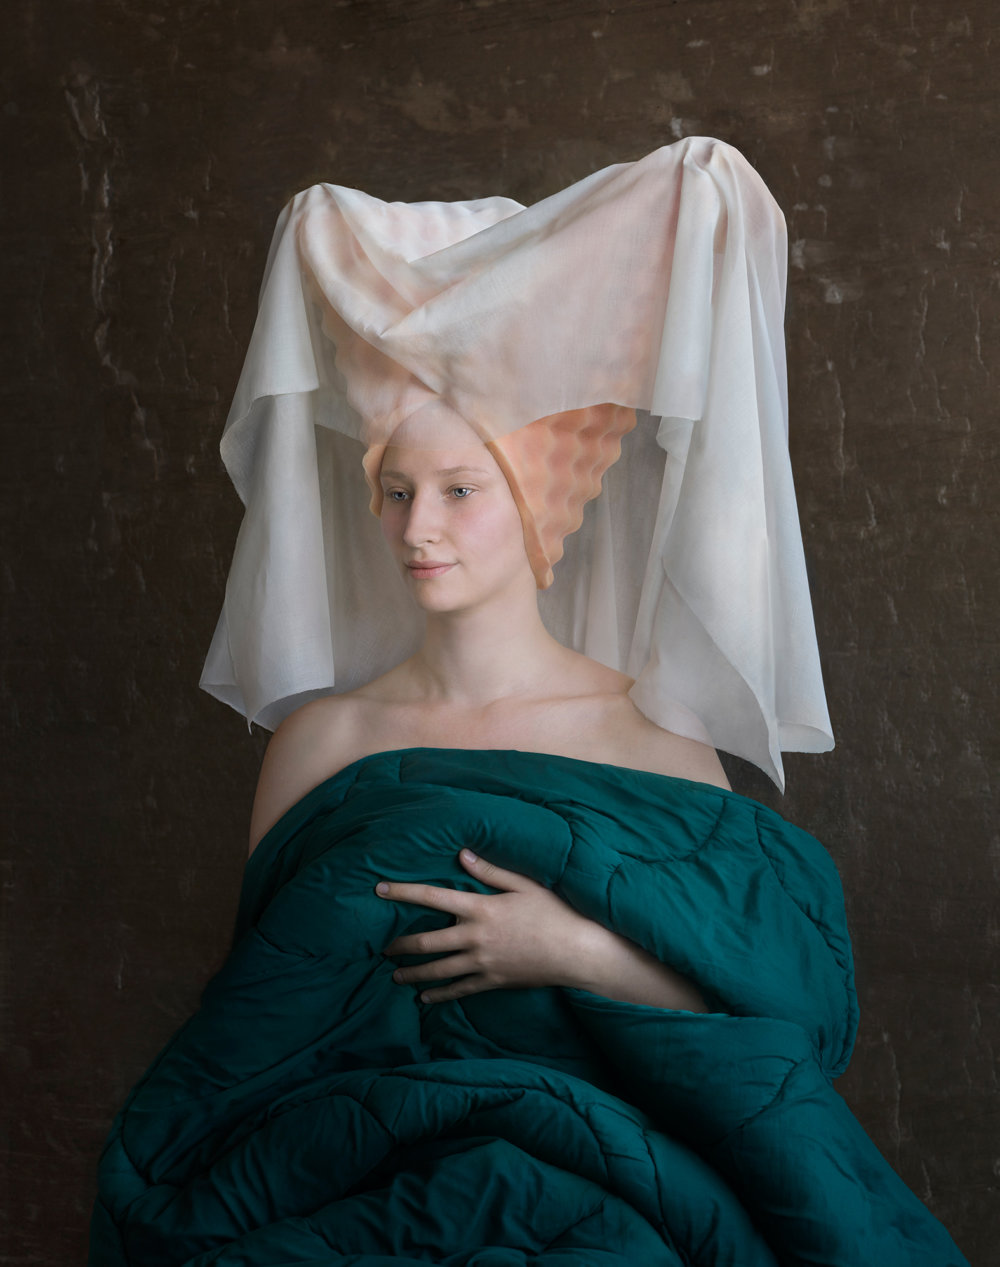 Discarded Packaging Recycled Into Renaissance Costumes By Suzanne Jongmans 10